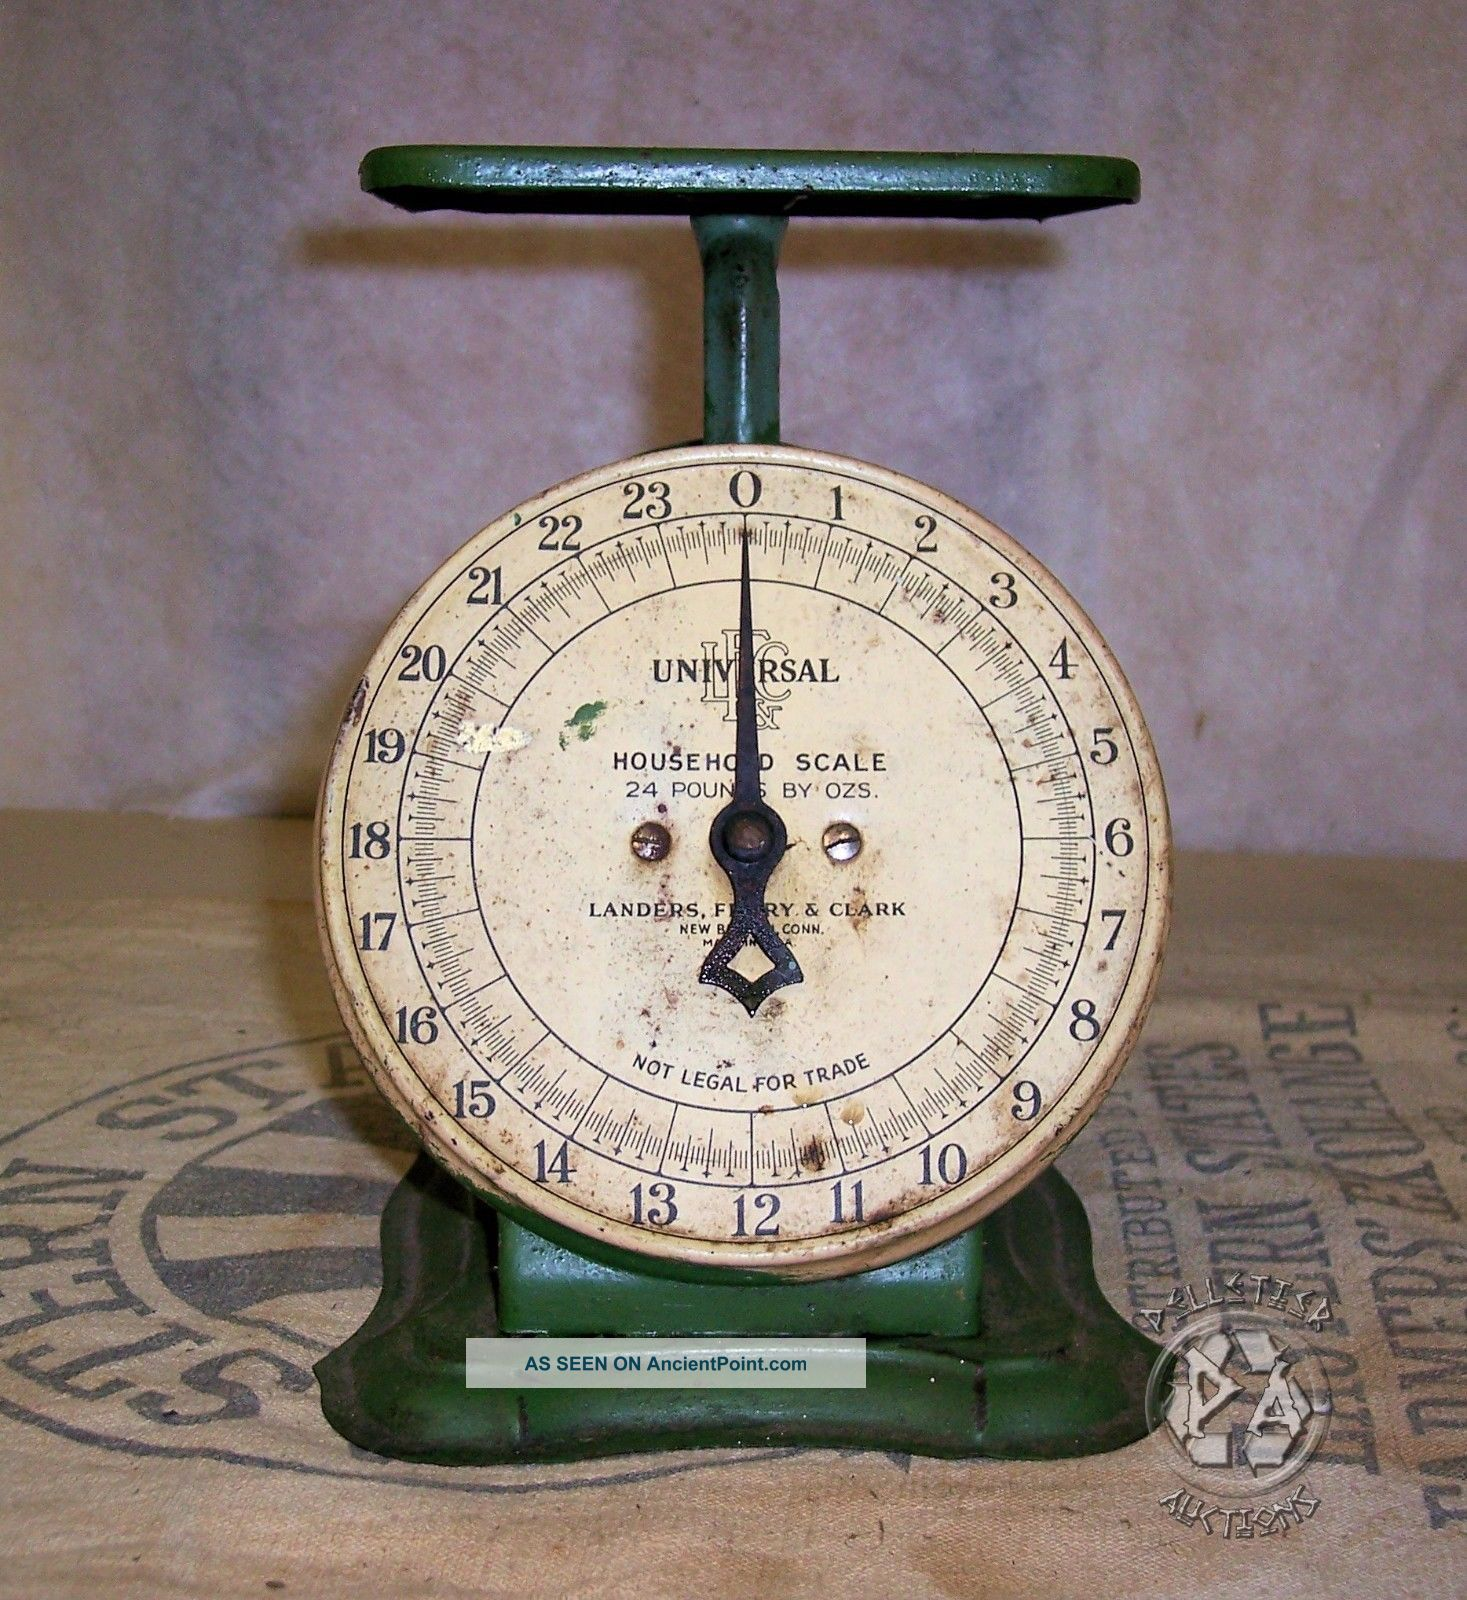 Antique Vintage Universal Landers,  Frary & Clark,  24 Pound Capacity Scale Scales photo